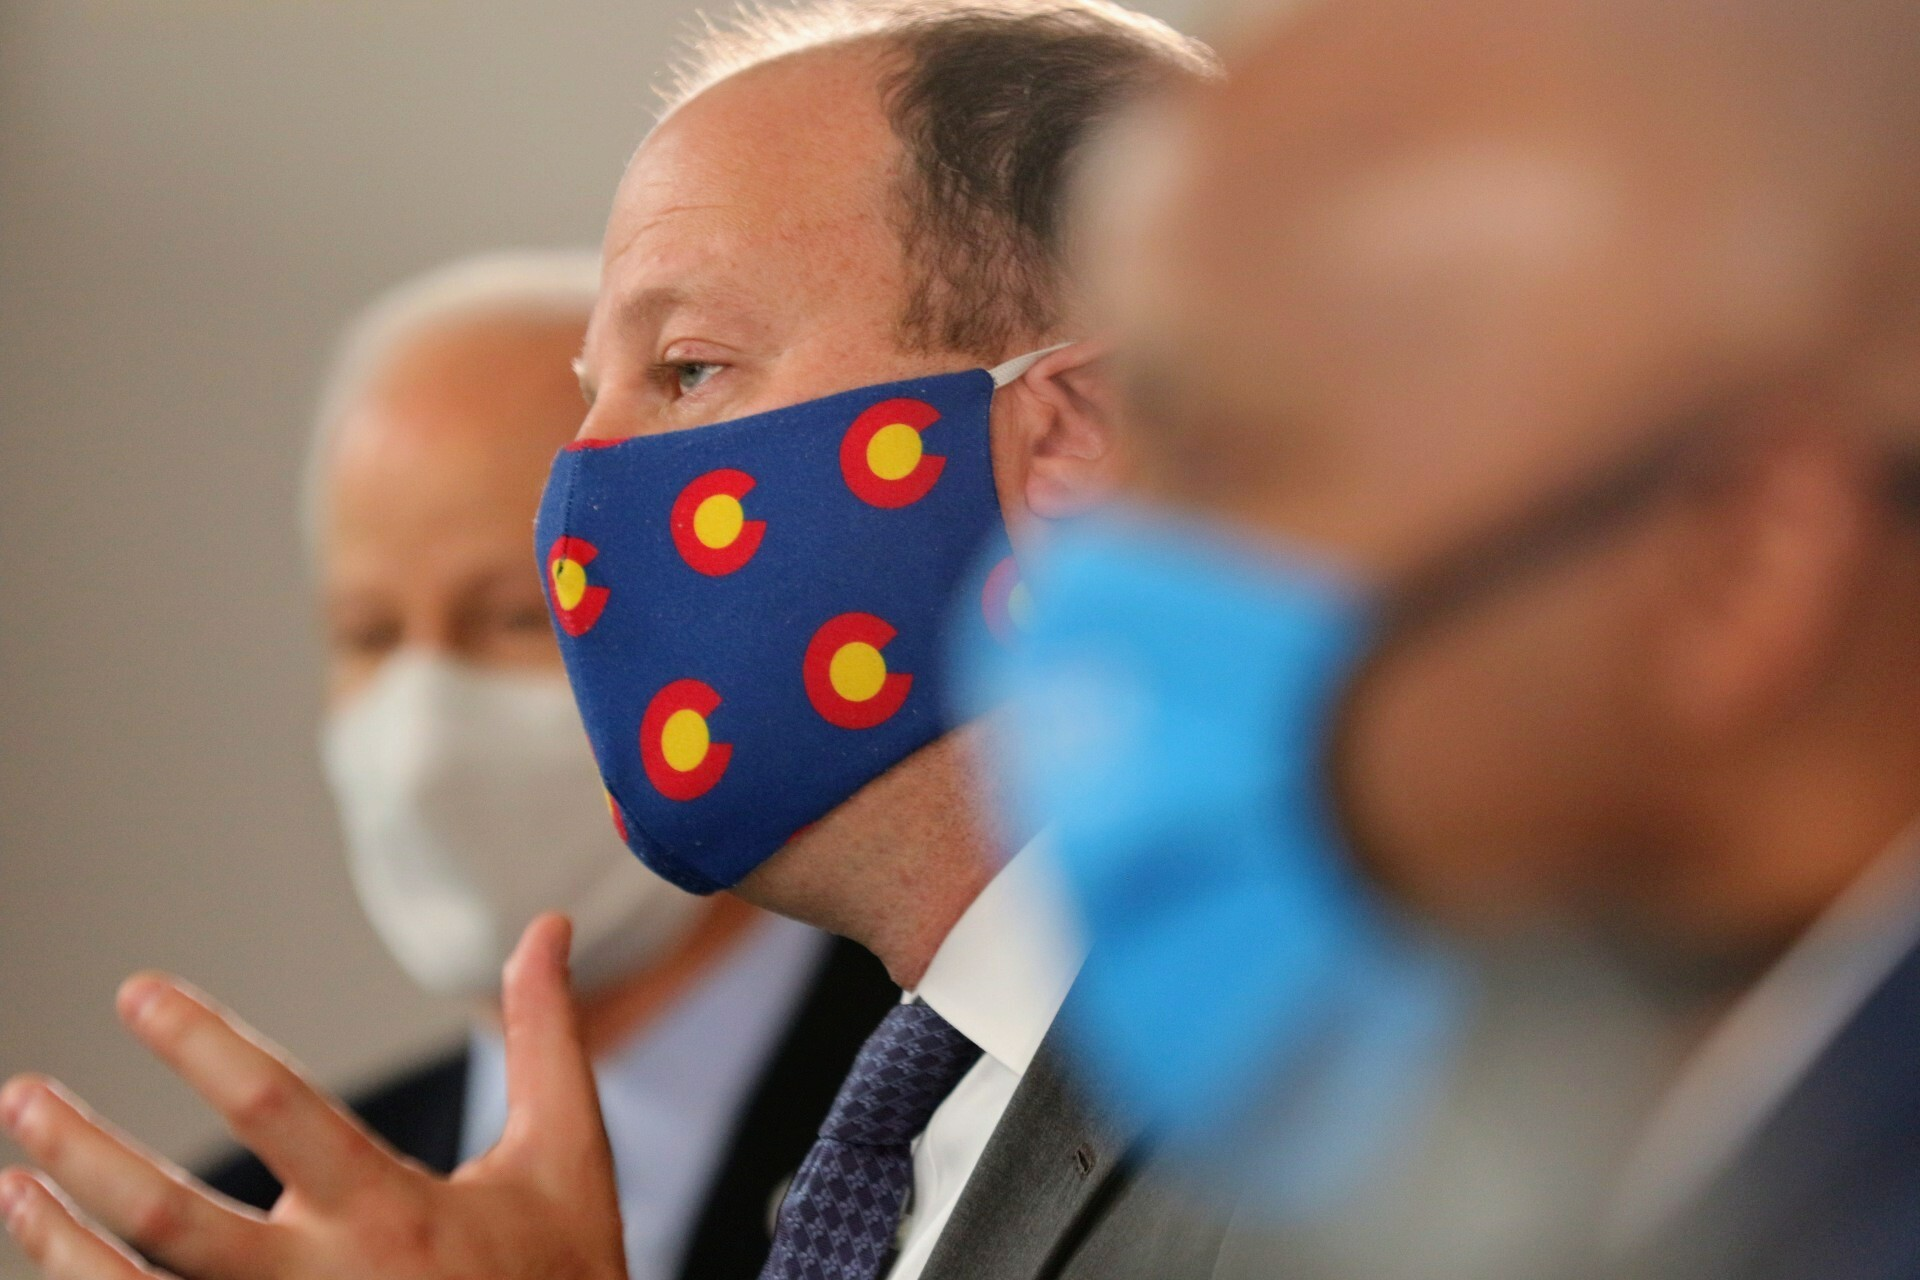 New mask requirement announced by Colorado Governor Jared Polis